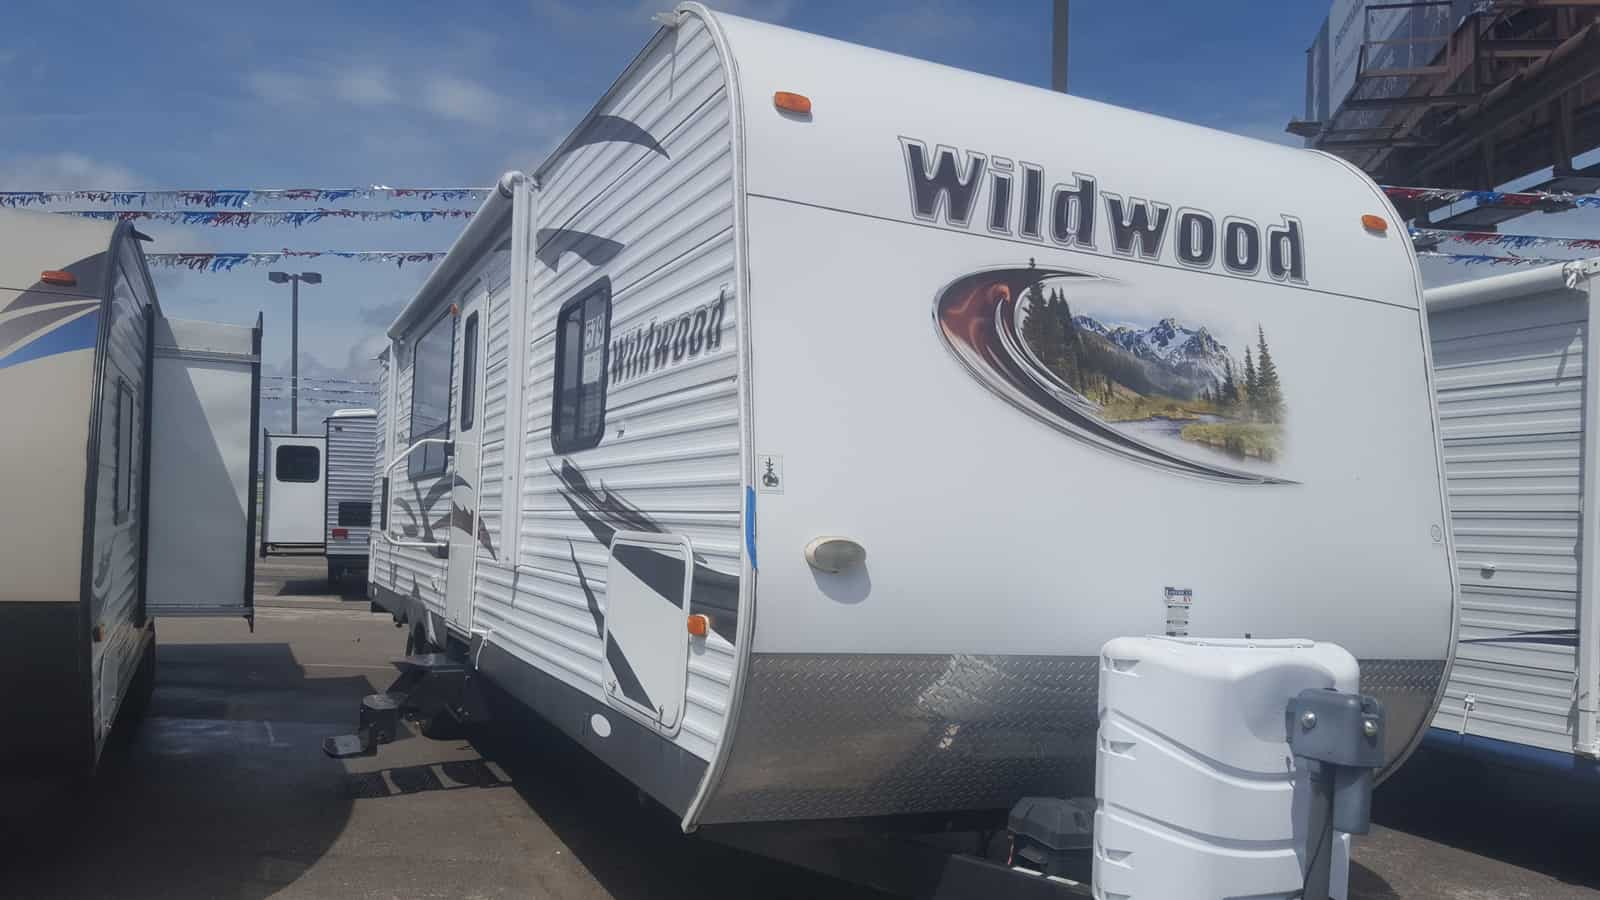 USED 2012 Forest River WILDWOOD 27RKSS - American RV